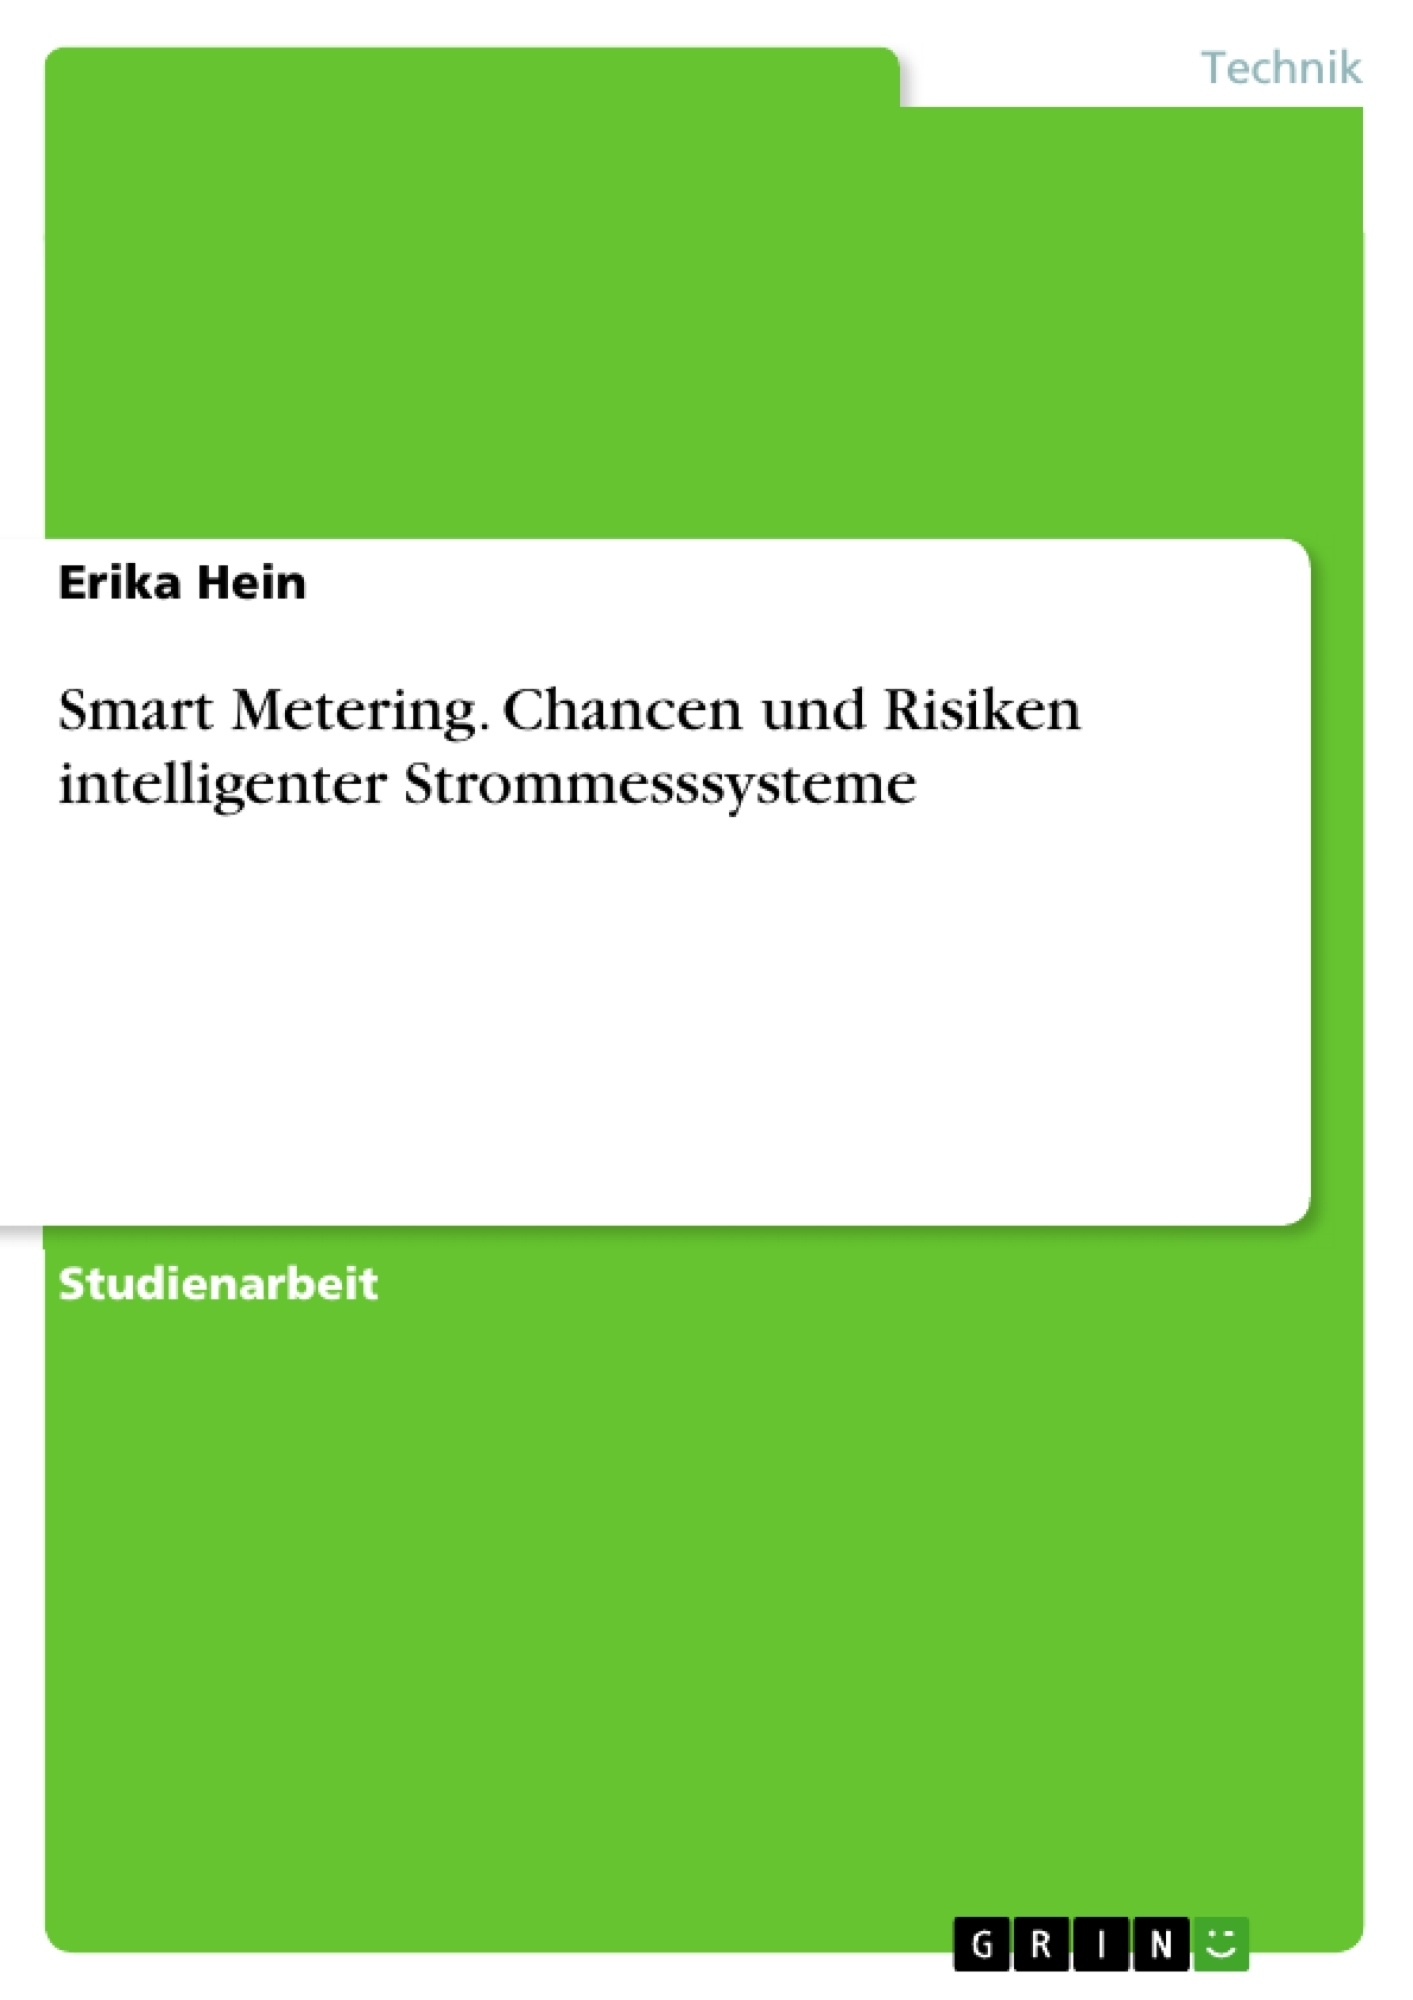 Titel: Smart Metering. Chancen und Risiken intelligenter Strommesssysteme